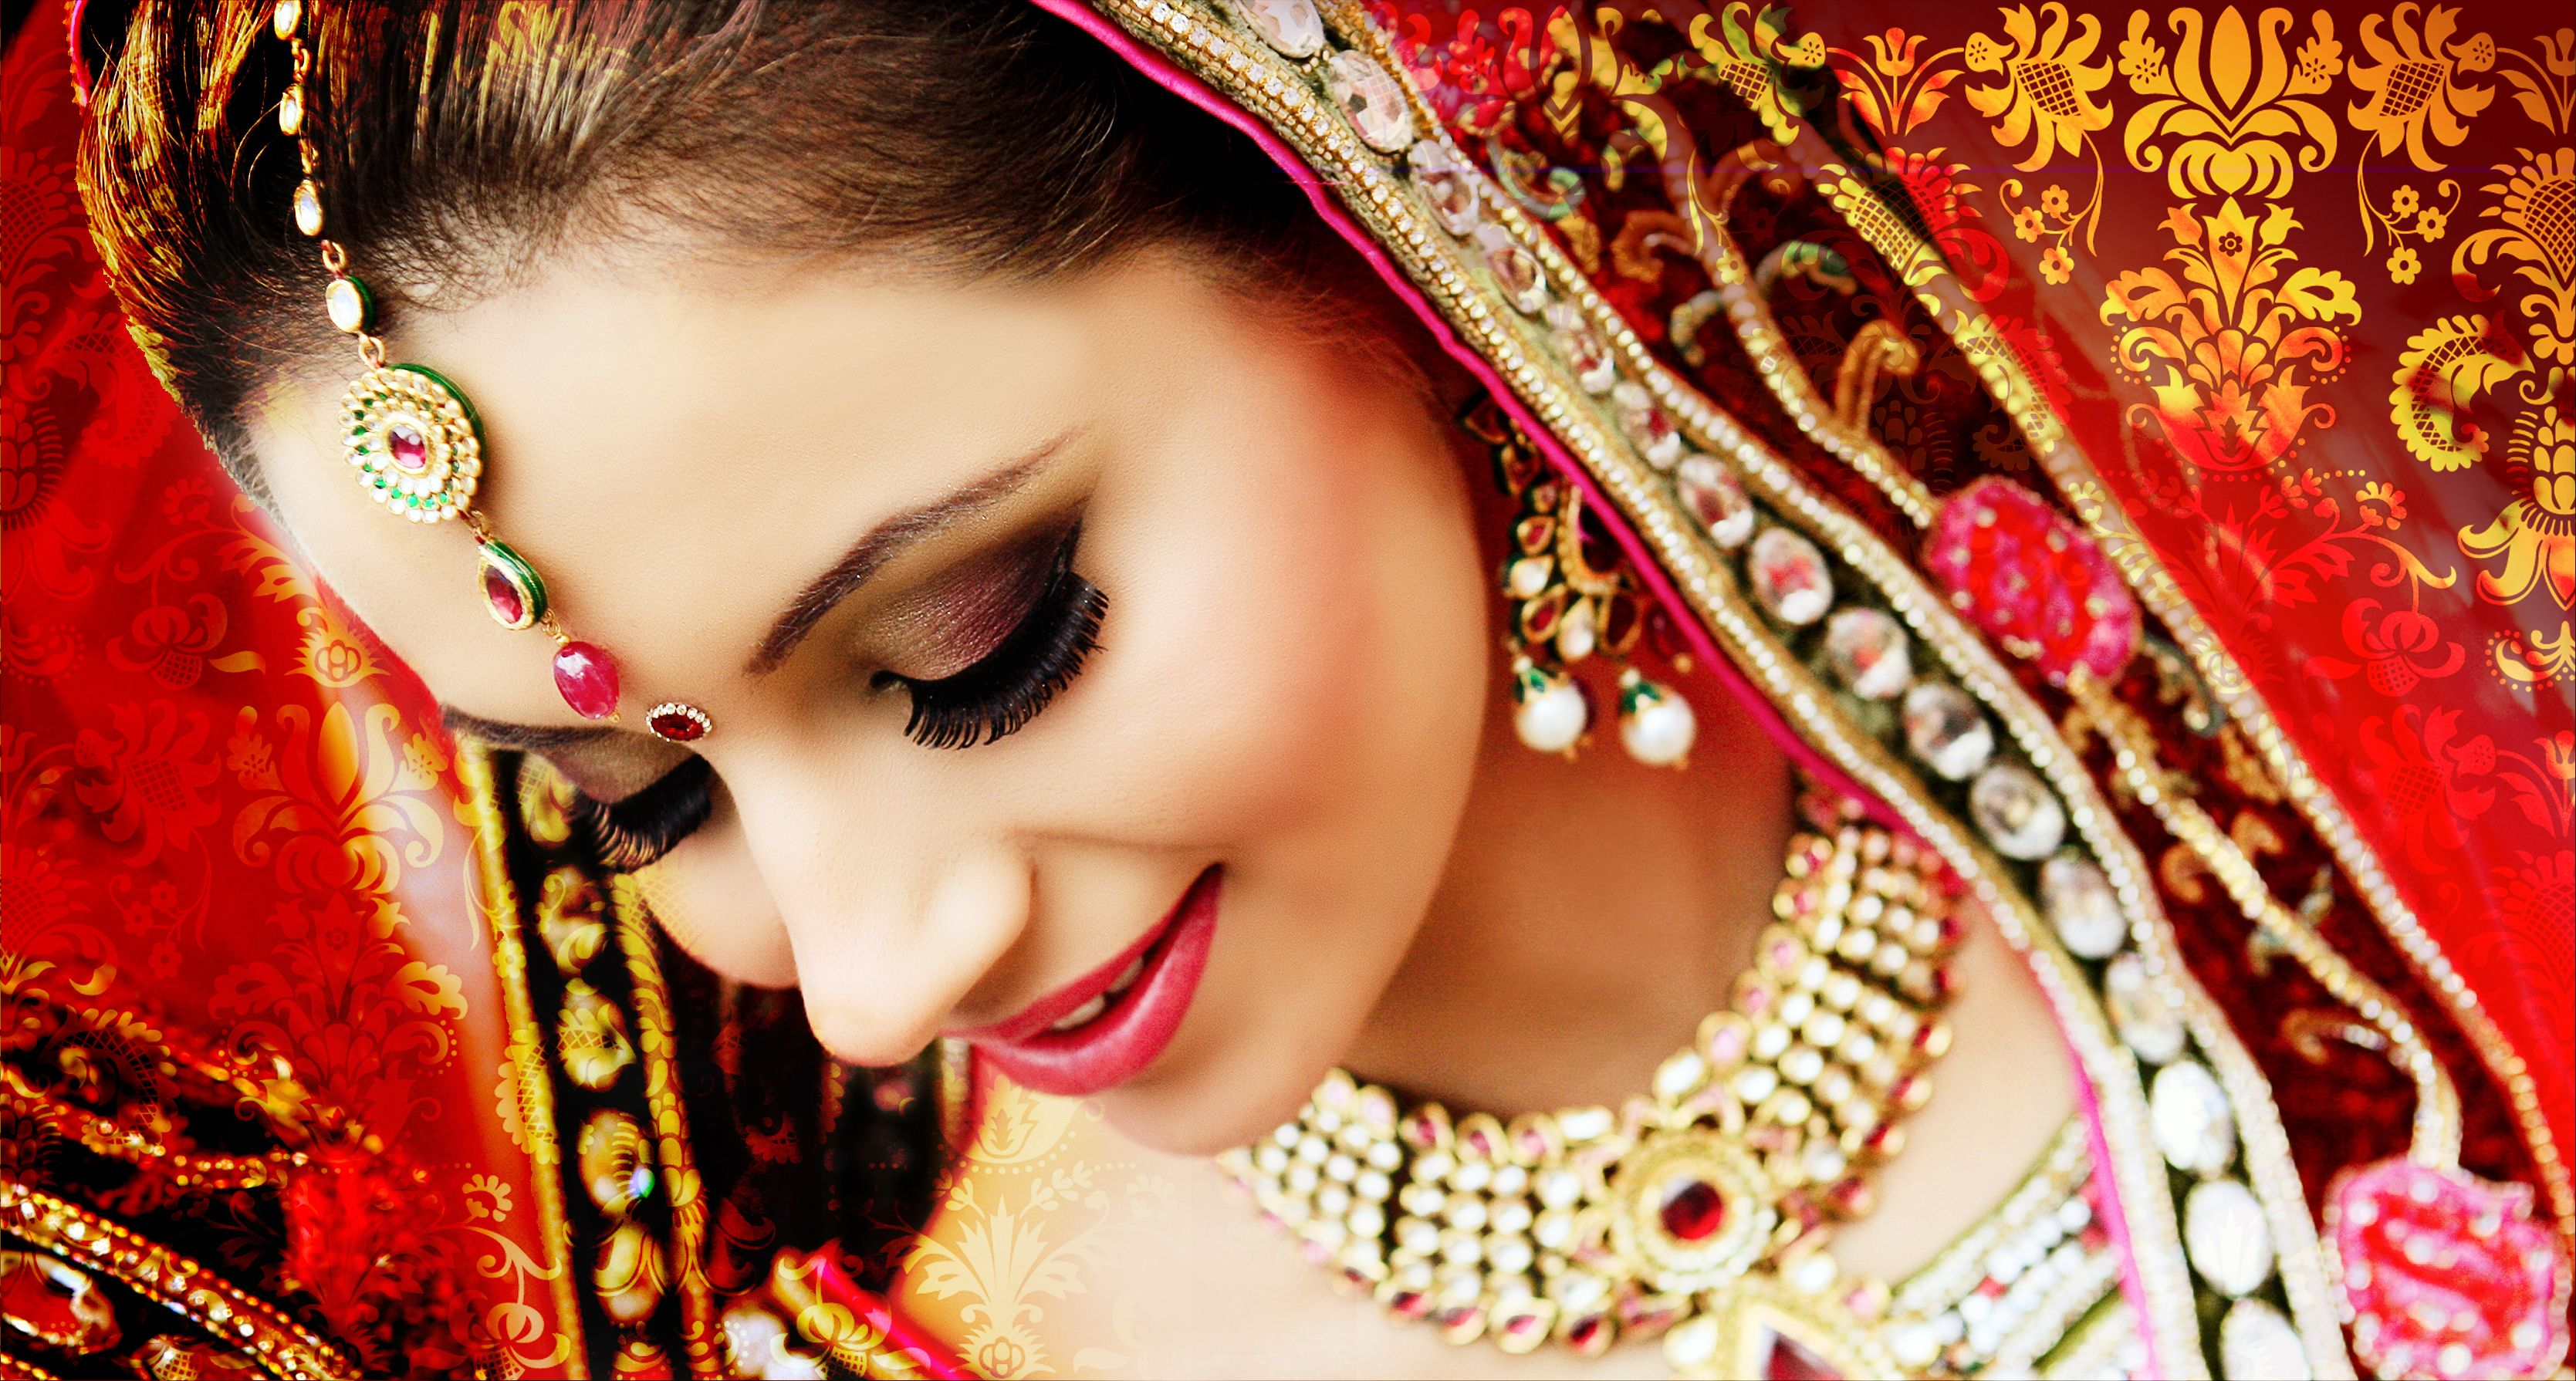 The Vip Signature Provides Indian Wedding Photography Asian Photographer Photographers And Cinematography For